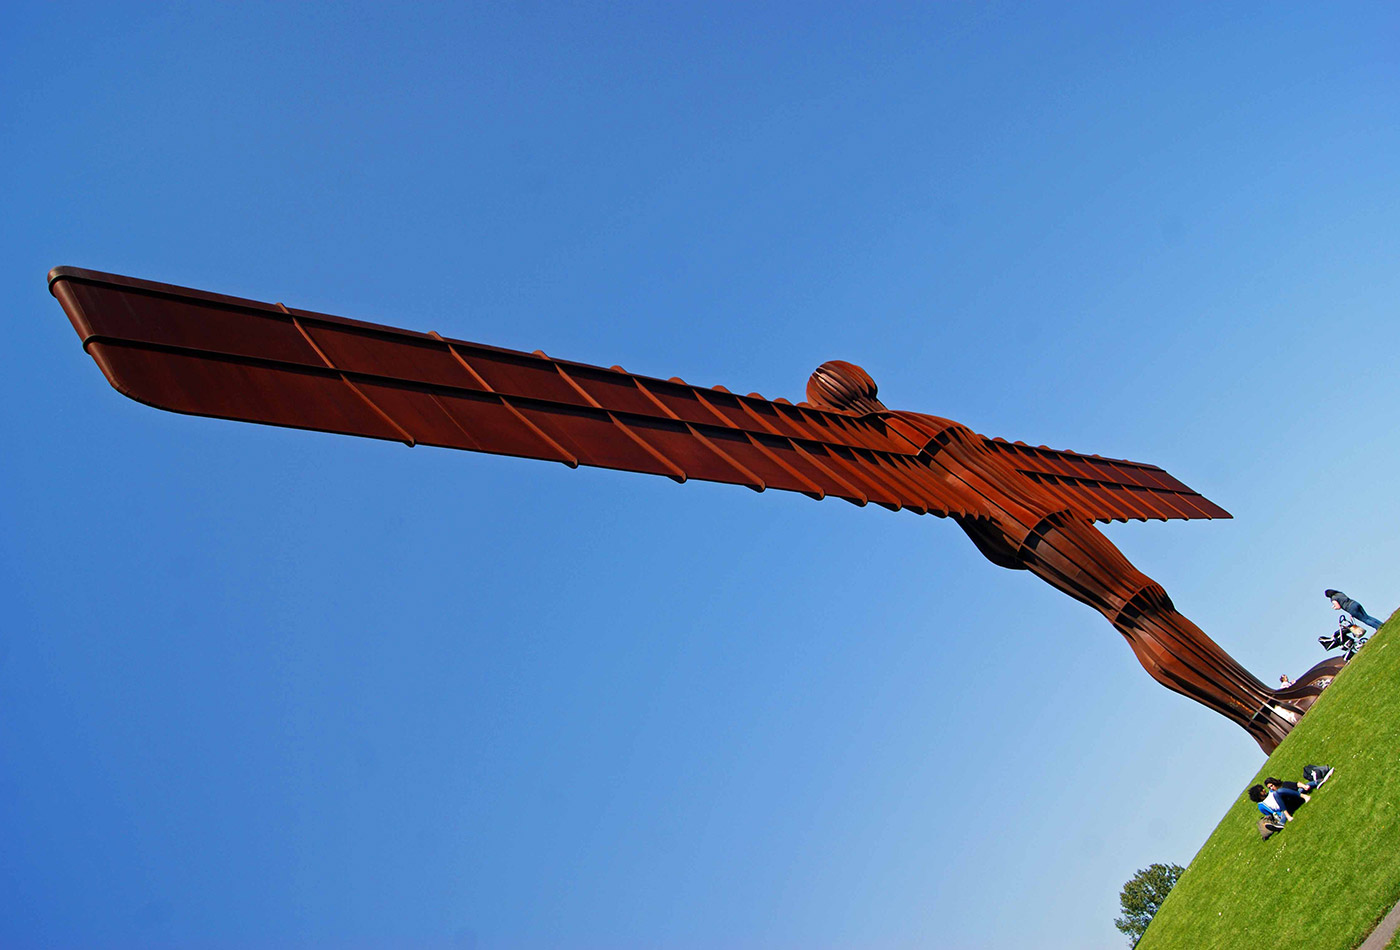 The angel of the north in Gateshead measures 20 metres tall and 54 metres across.